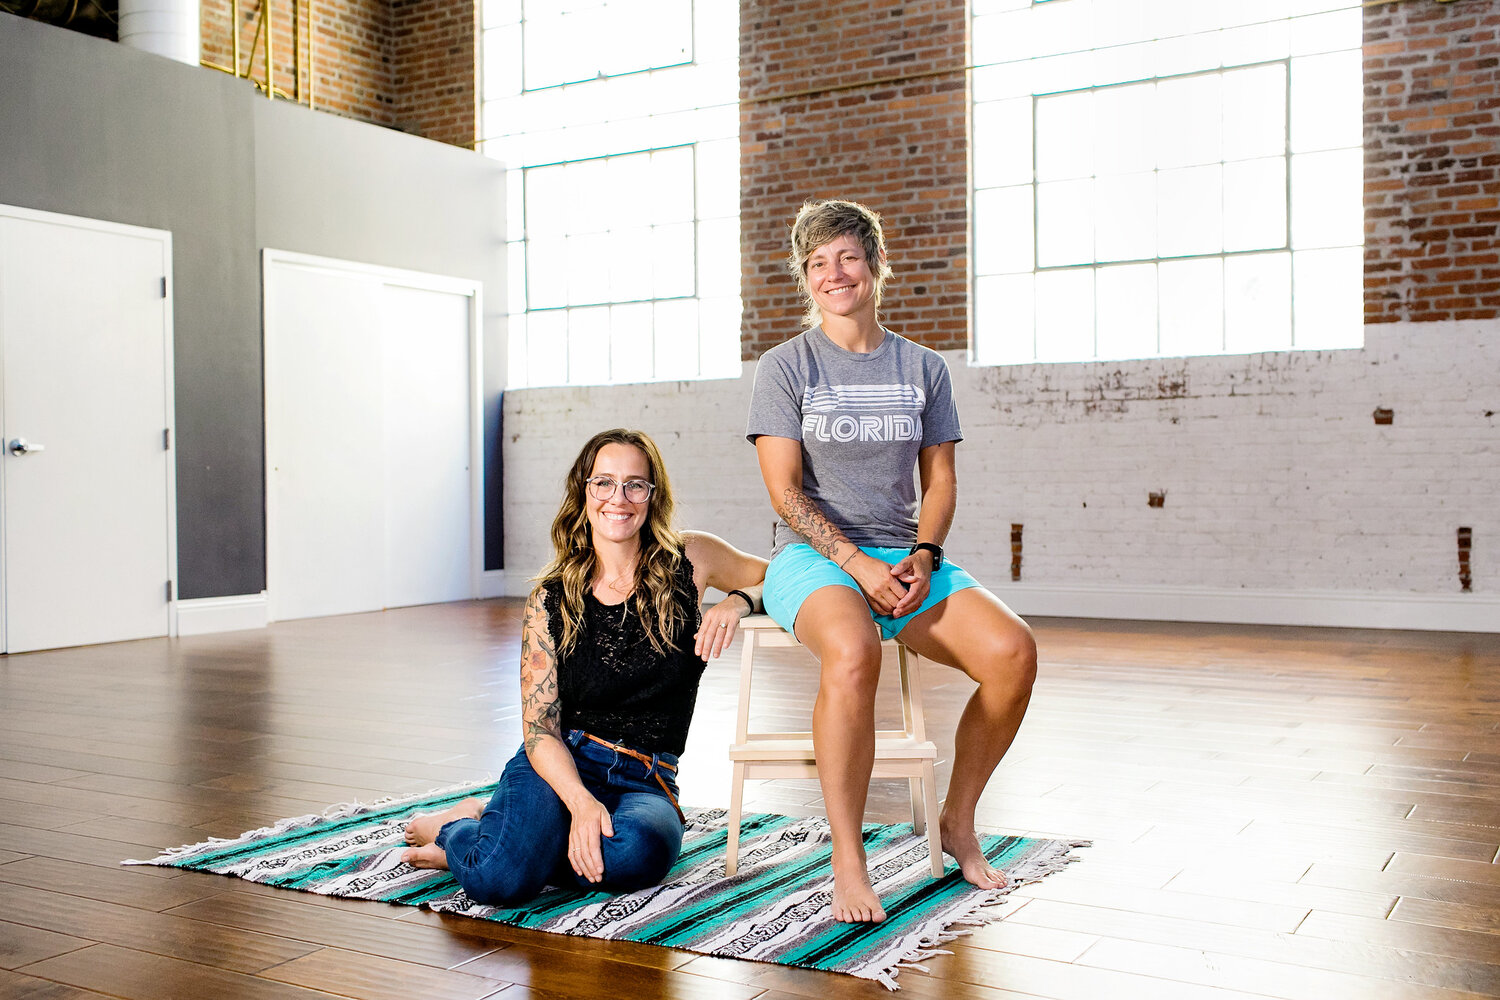 Owners of the Body Electric Yoga Company, Jenny Miller (Right) and Katelyn Grady (Left). Photo Credit City of St Petersburg